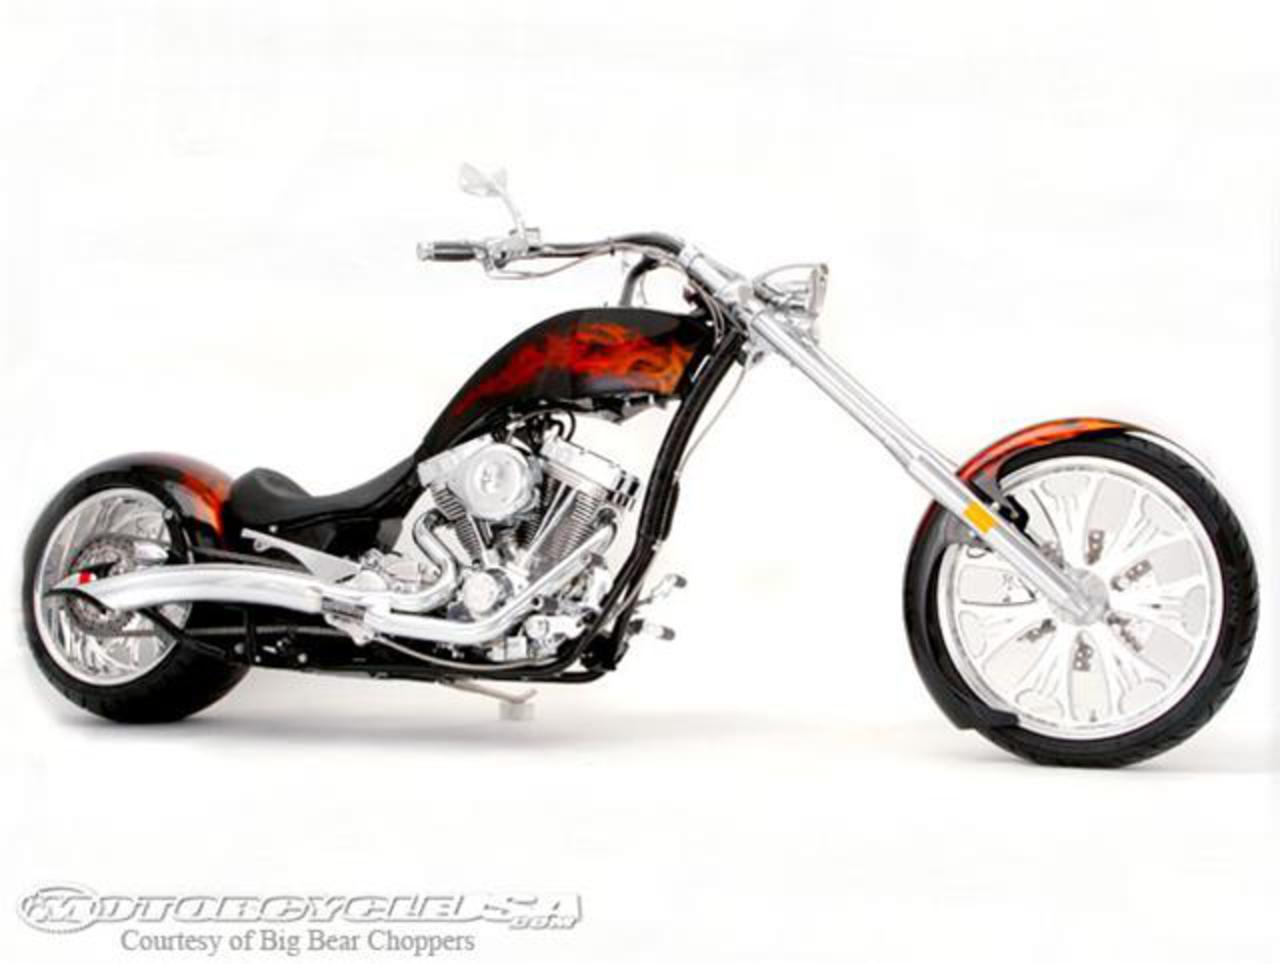 Big Bear Choppers Rage 100 Smooth EFI 2010 #1